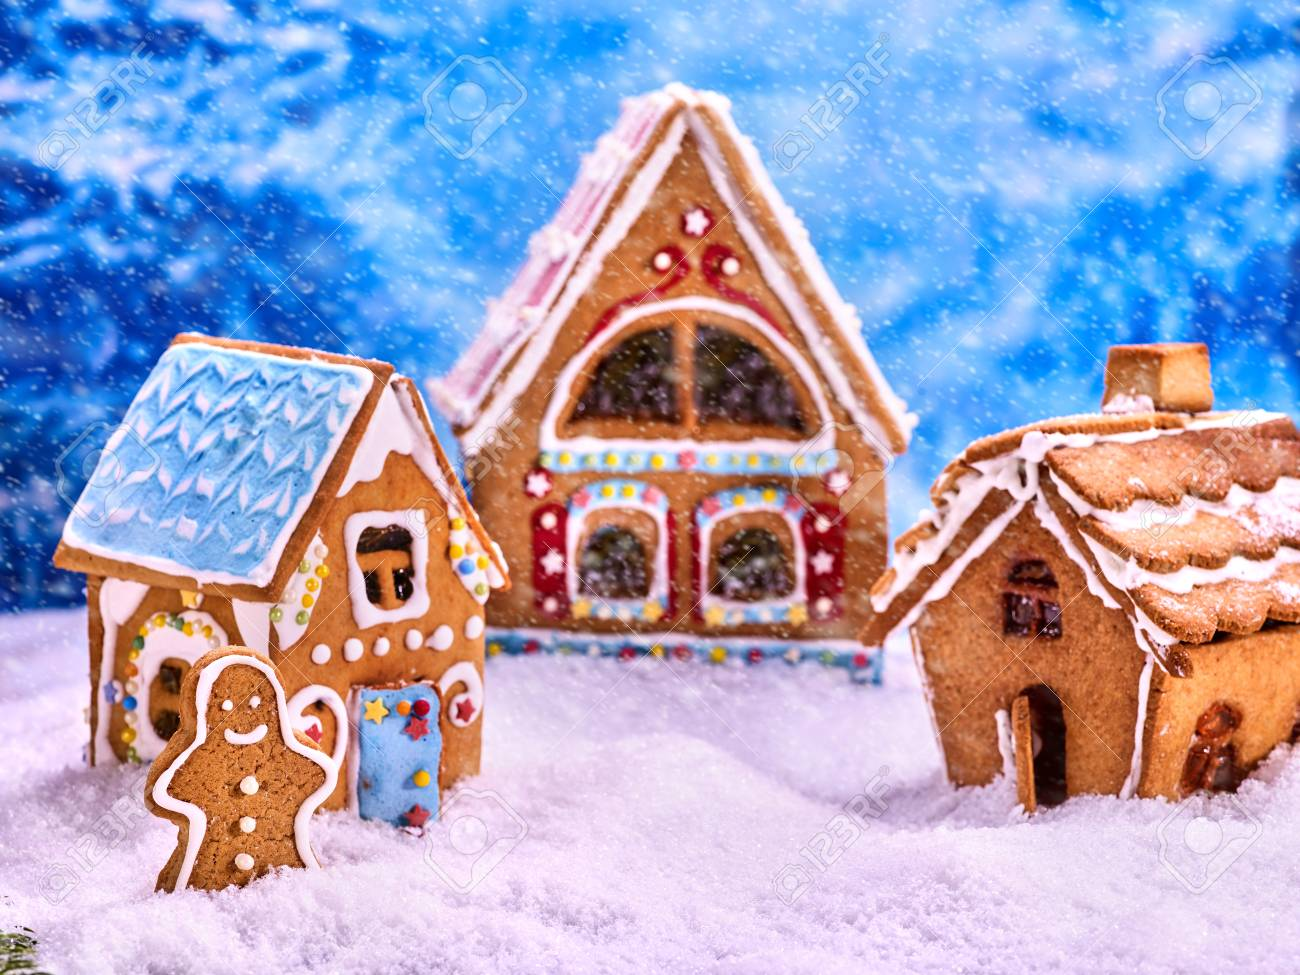 Christmas Gingerbread House Background.Three Fabulous Gingerbread House For Christmas Gingerbread Man